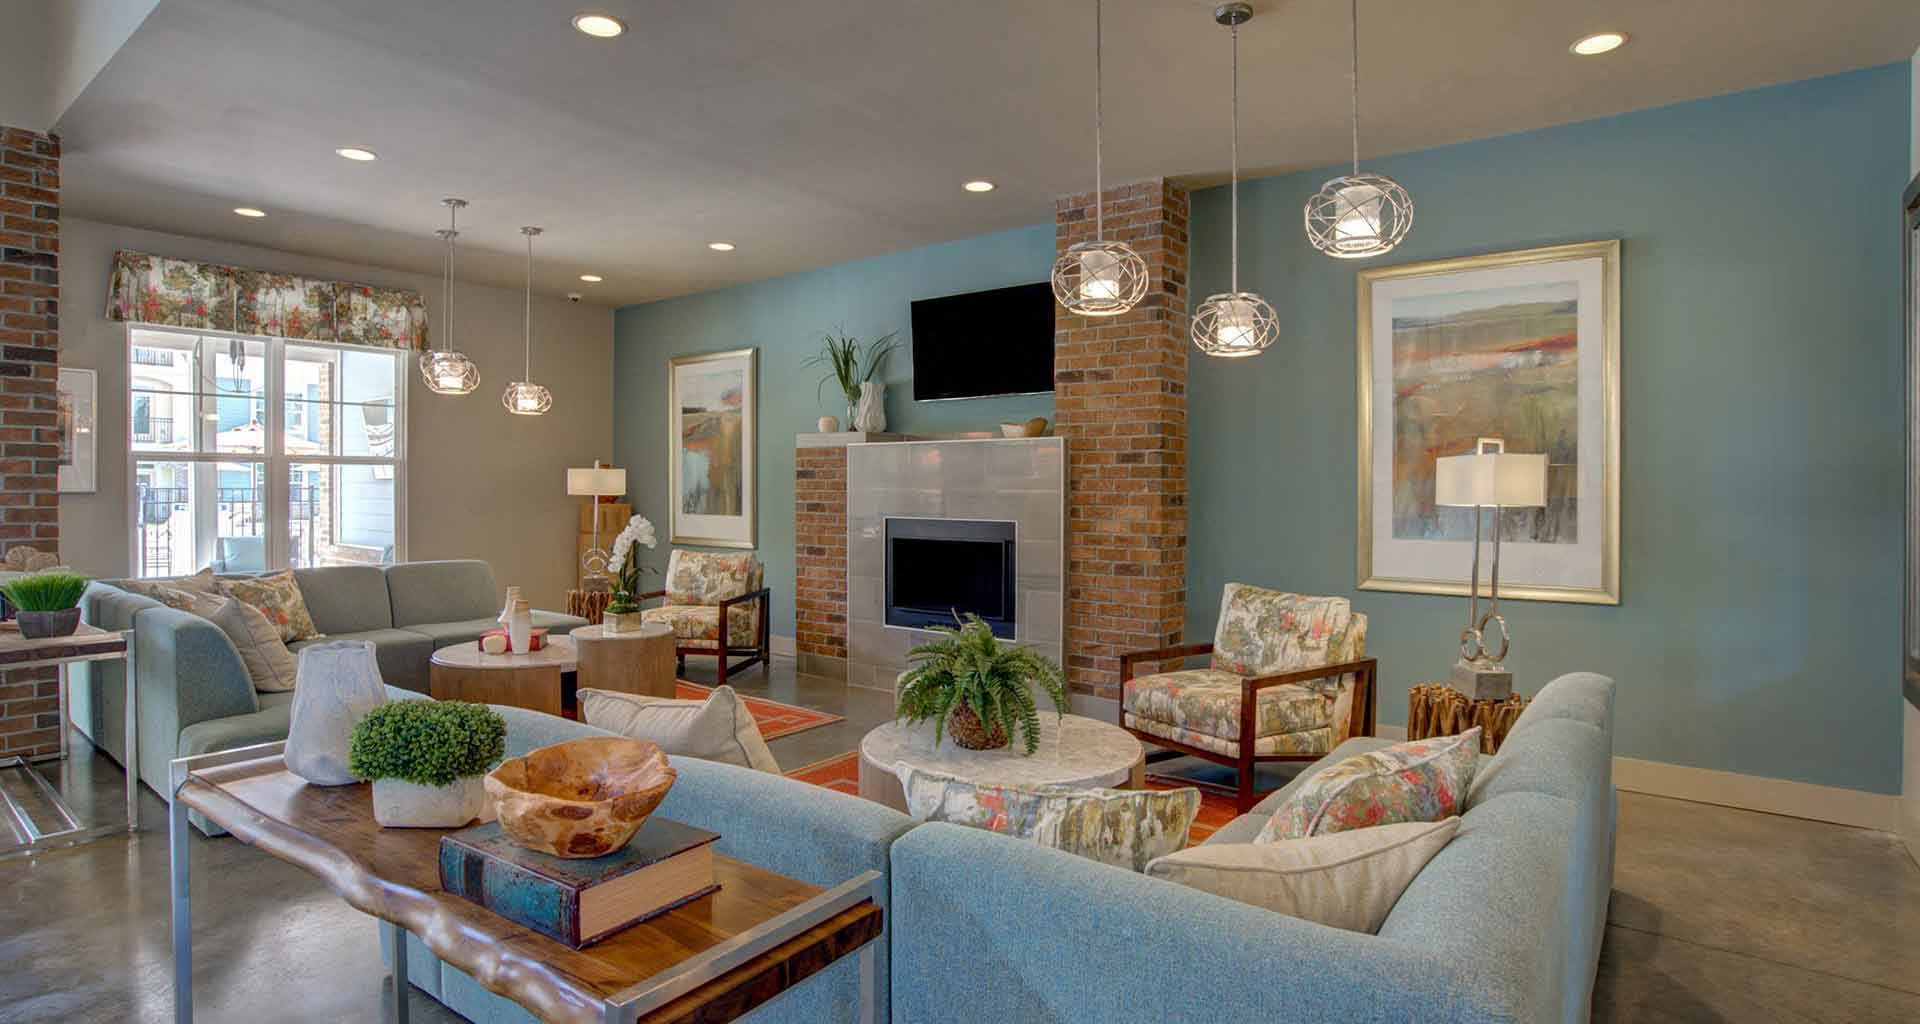 Living room remodel with standard fireplace at Beckstone Apartments, Summerville, South Carolina